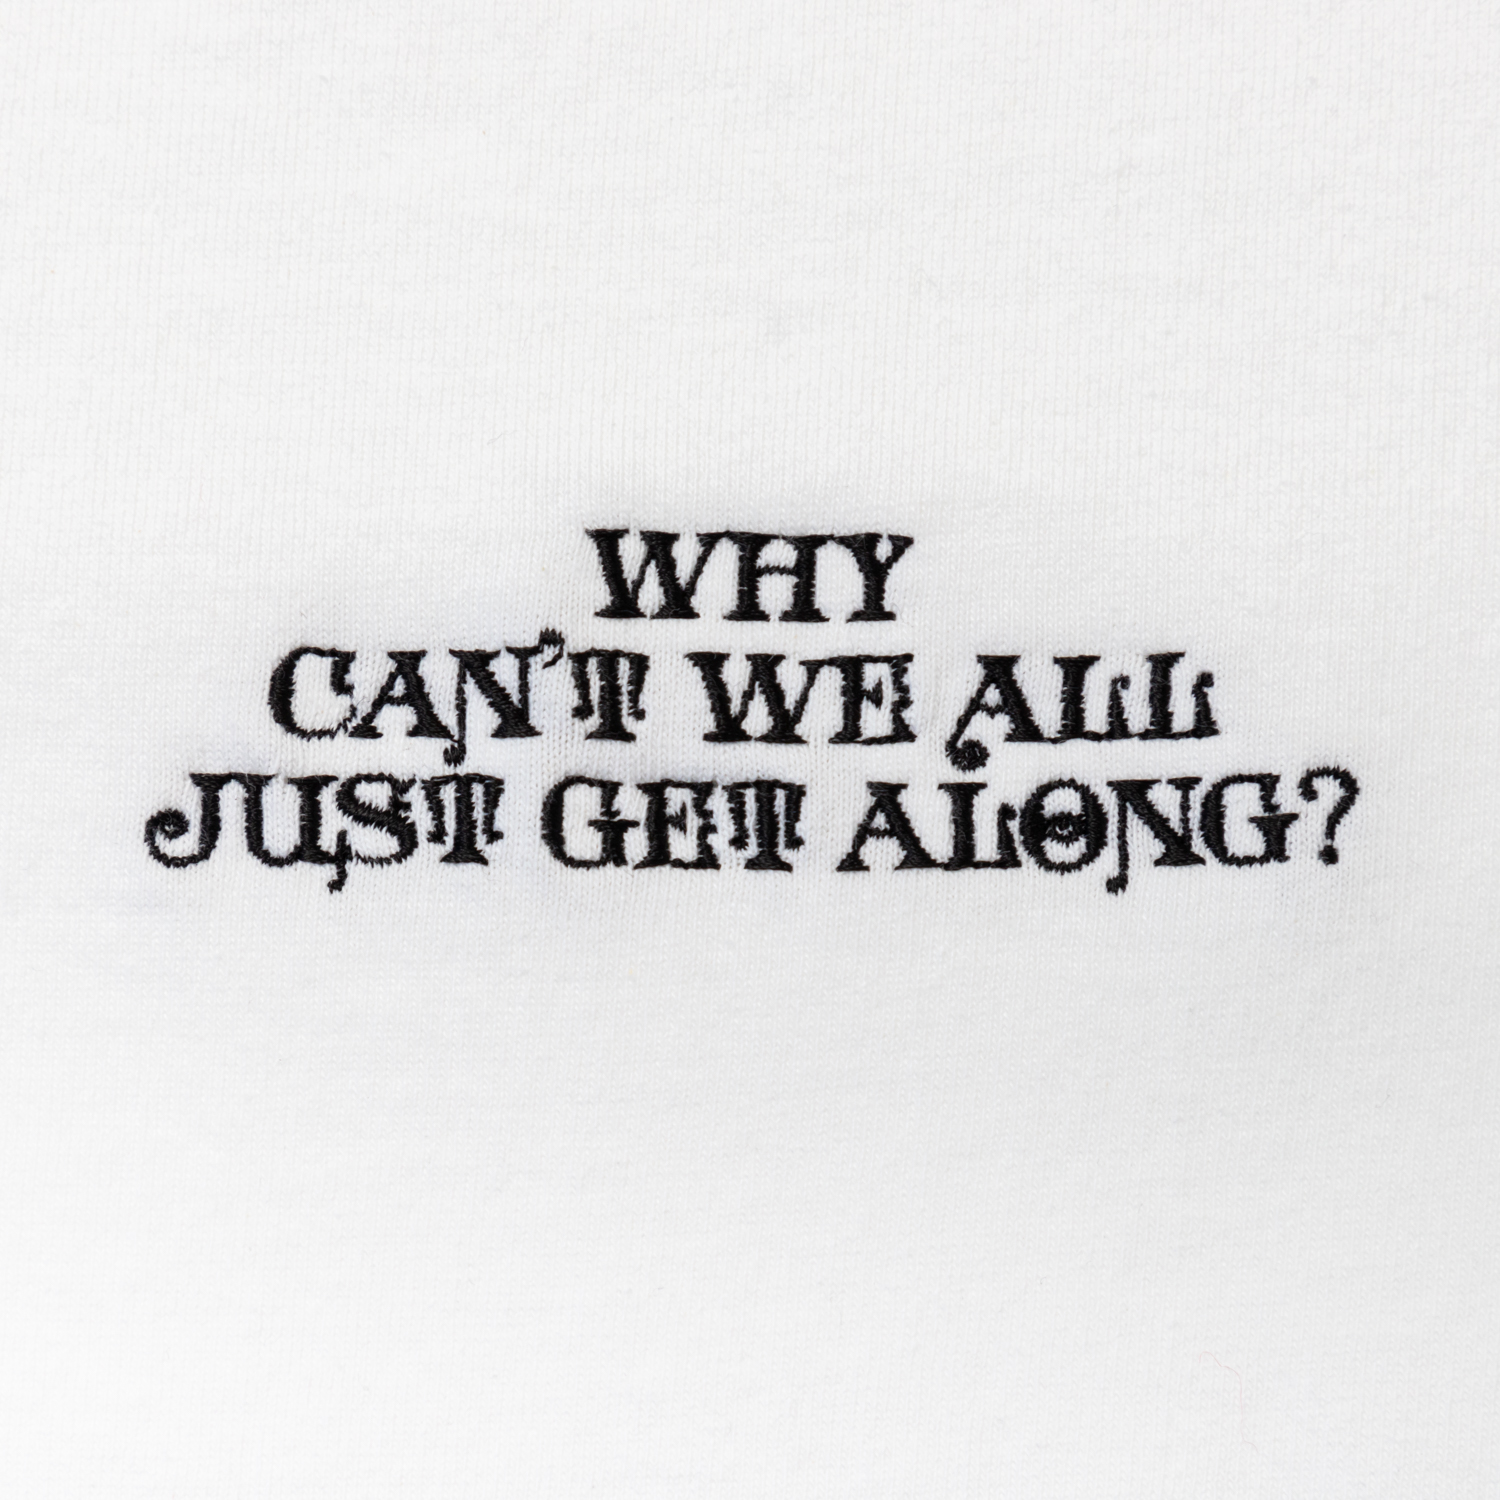 WHY CAN'T WE ALL JUST GET ALONG? designed by Jerry UKAI